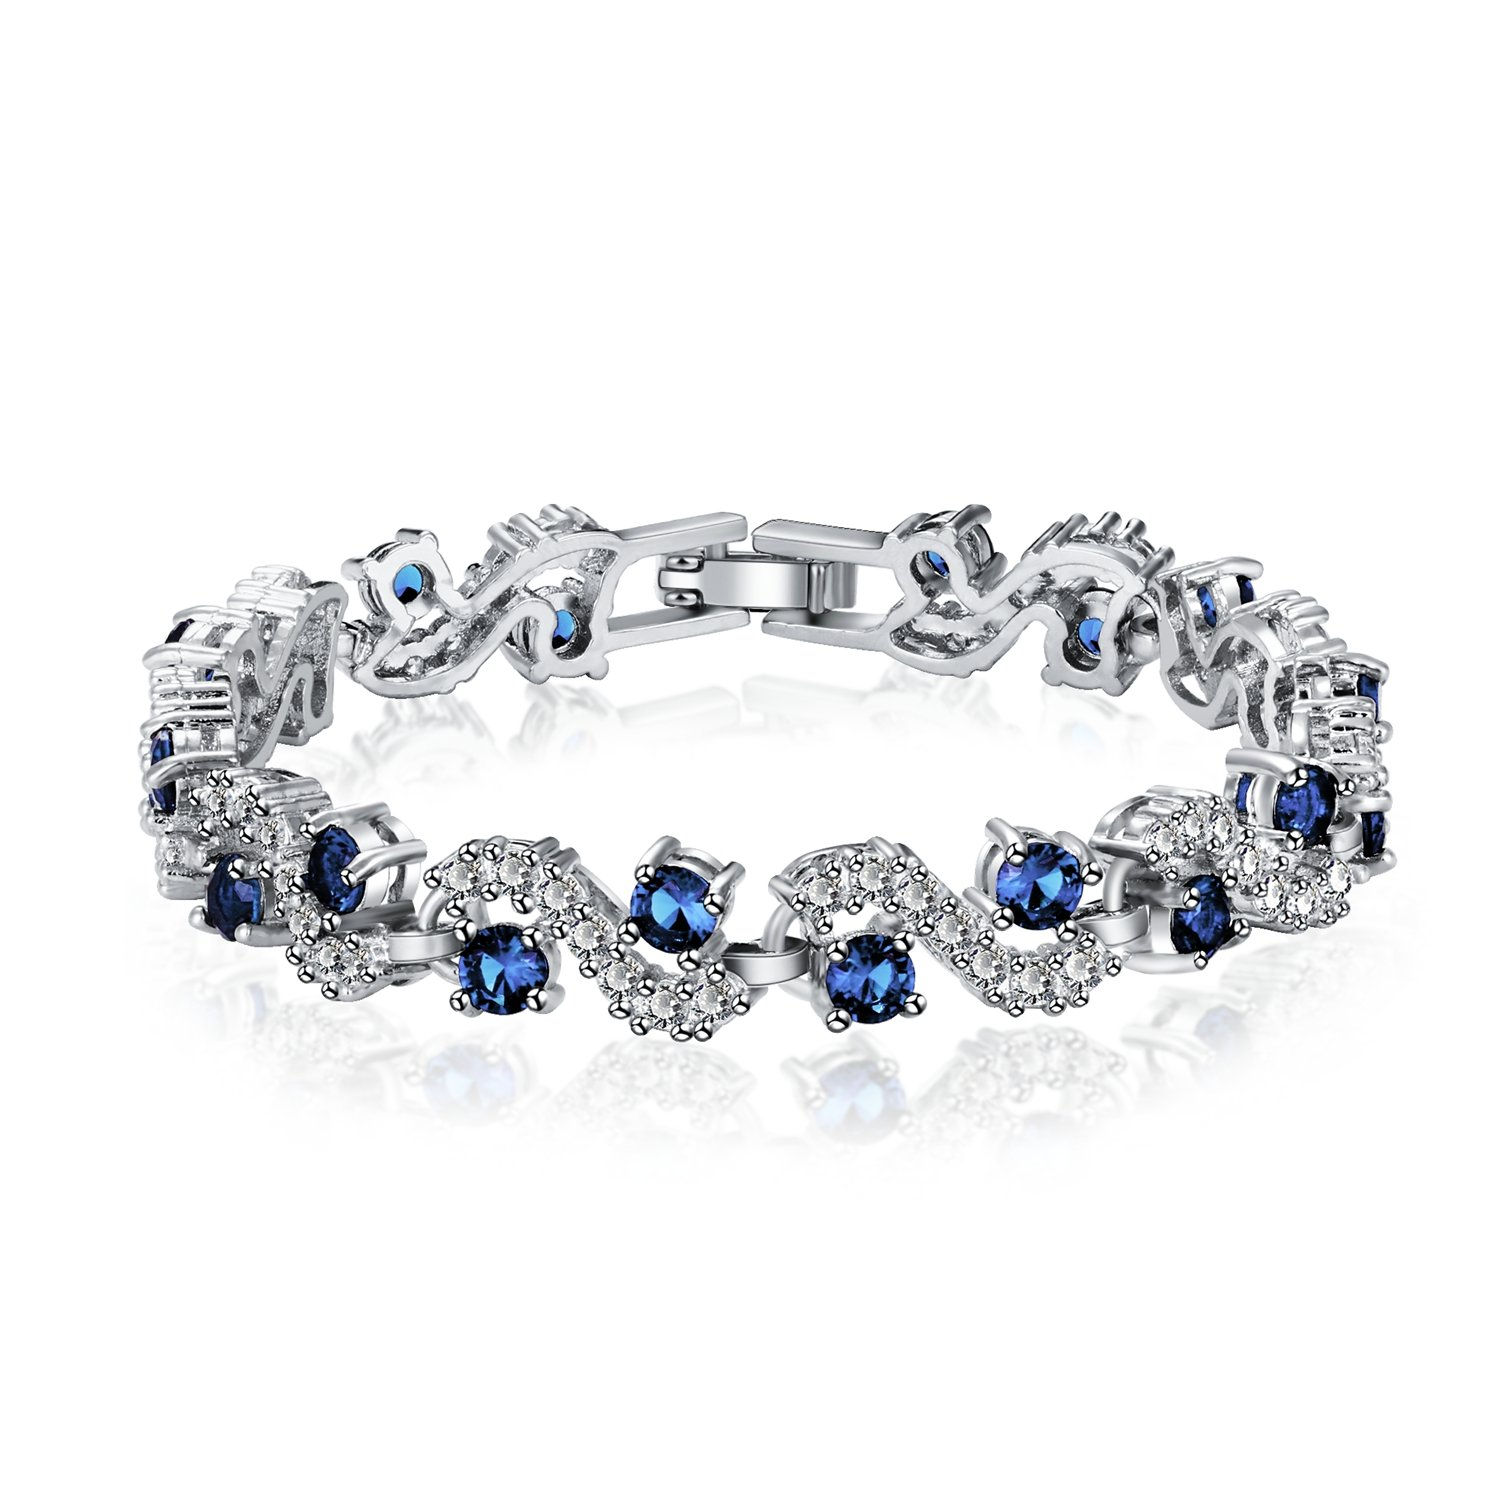 Feraco Blue Tennis Bracelet Women Cubic Zirconia Sapphire Jewelry Bridal Crystal Bangle Mom Daughter,7.48 inch